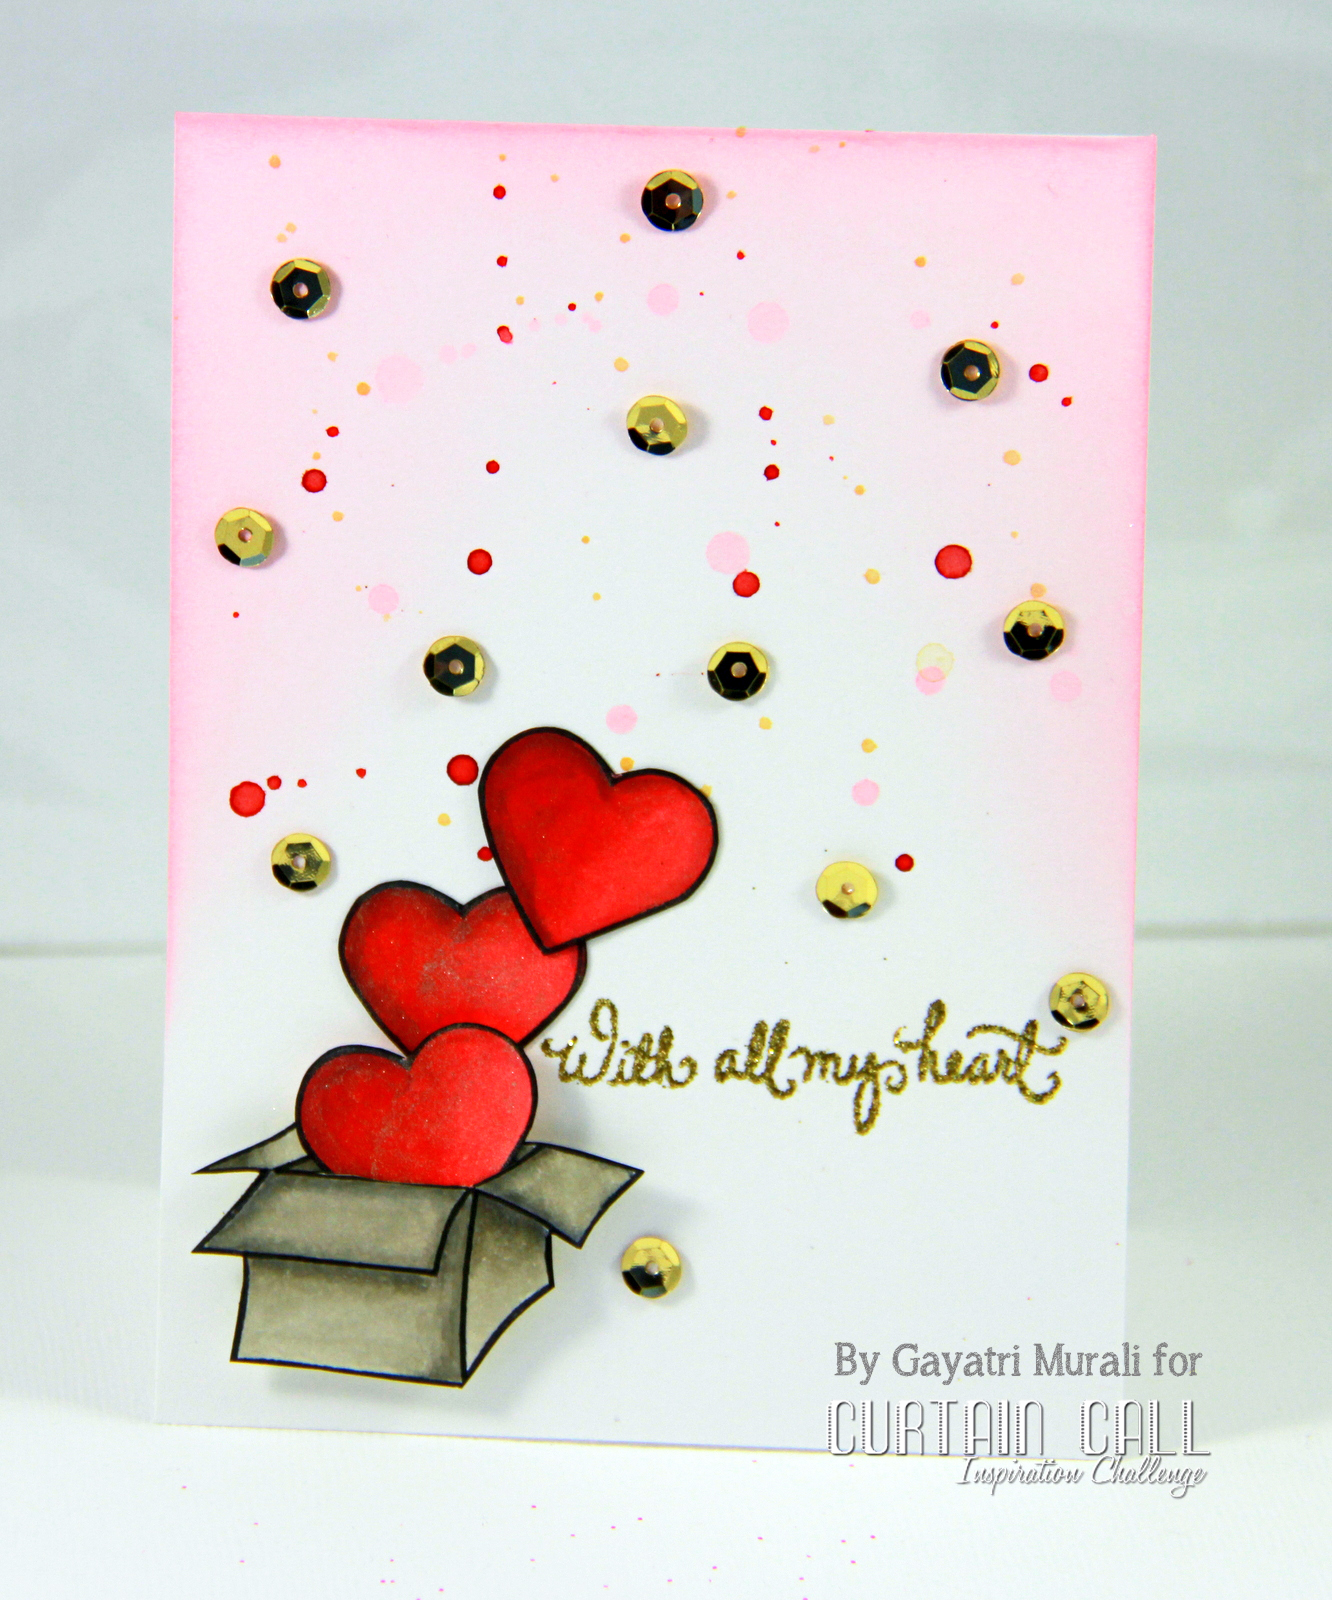 curtain call curtain call inspiration challenge  love letter